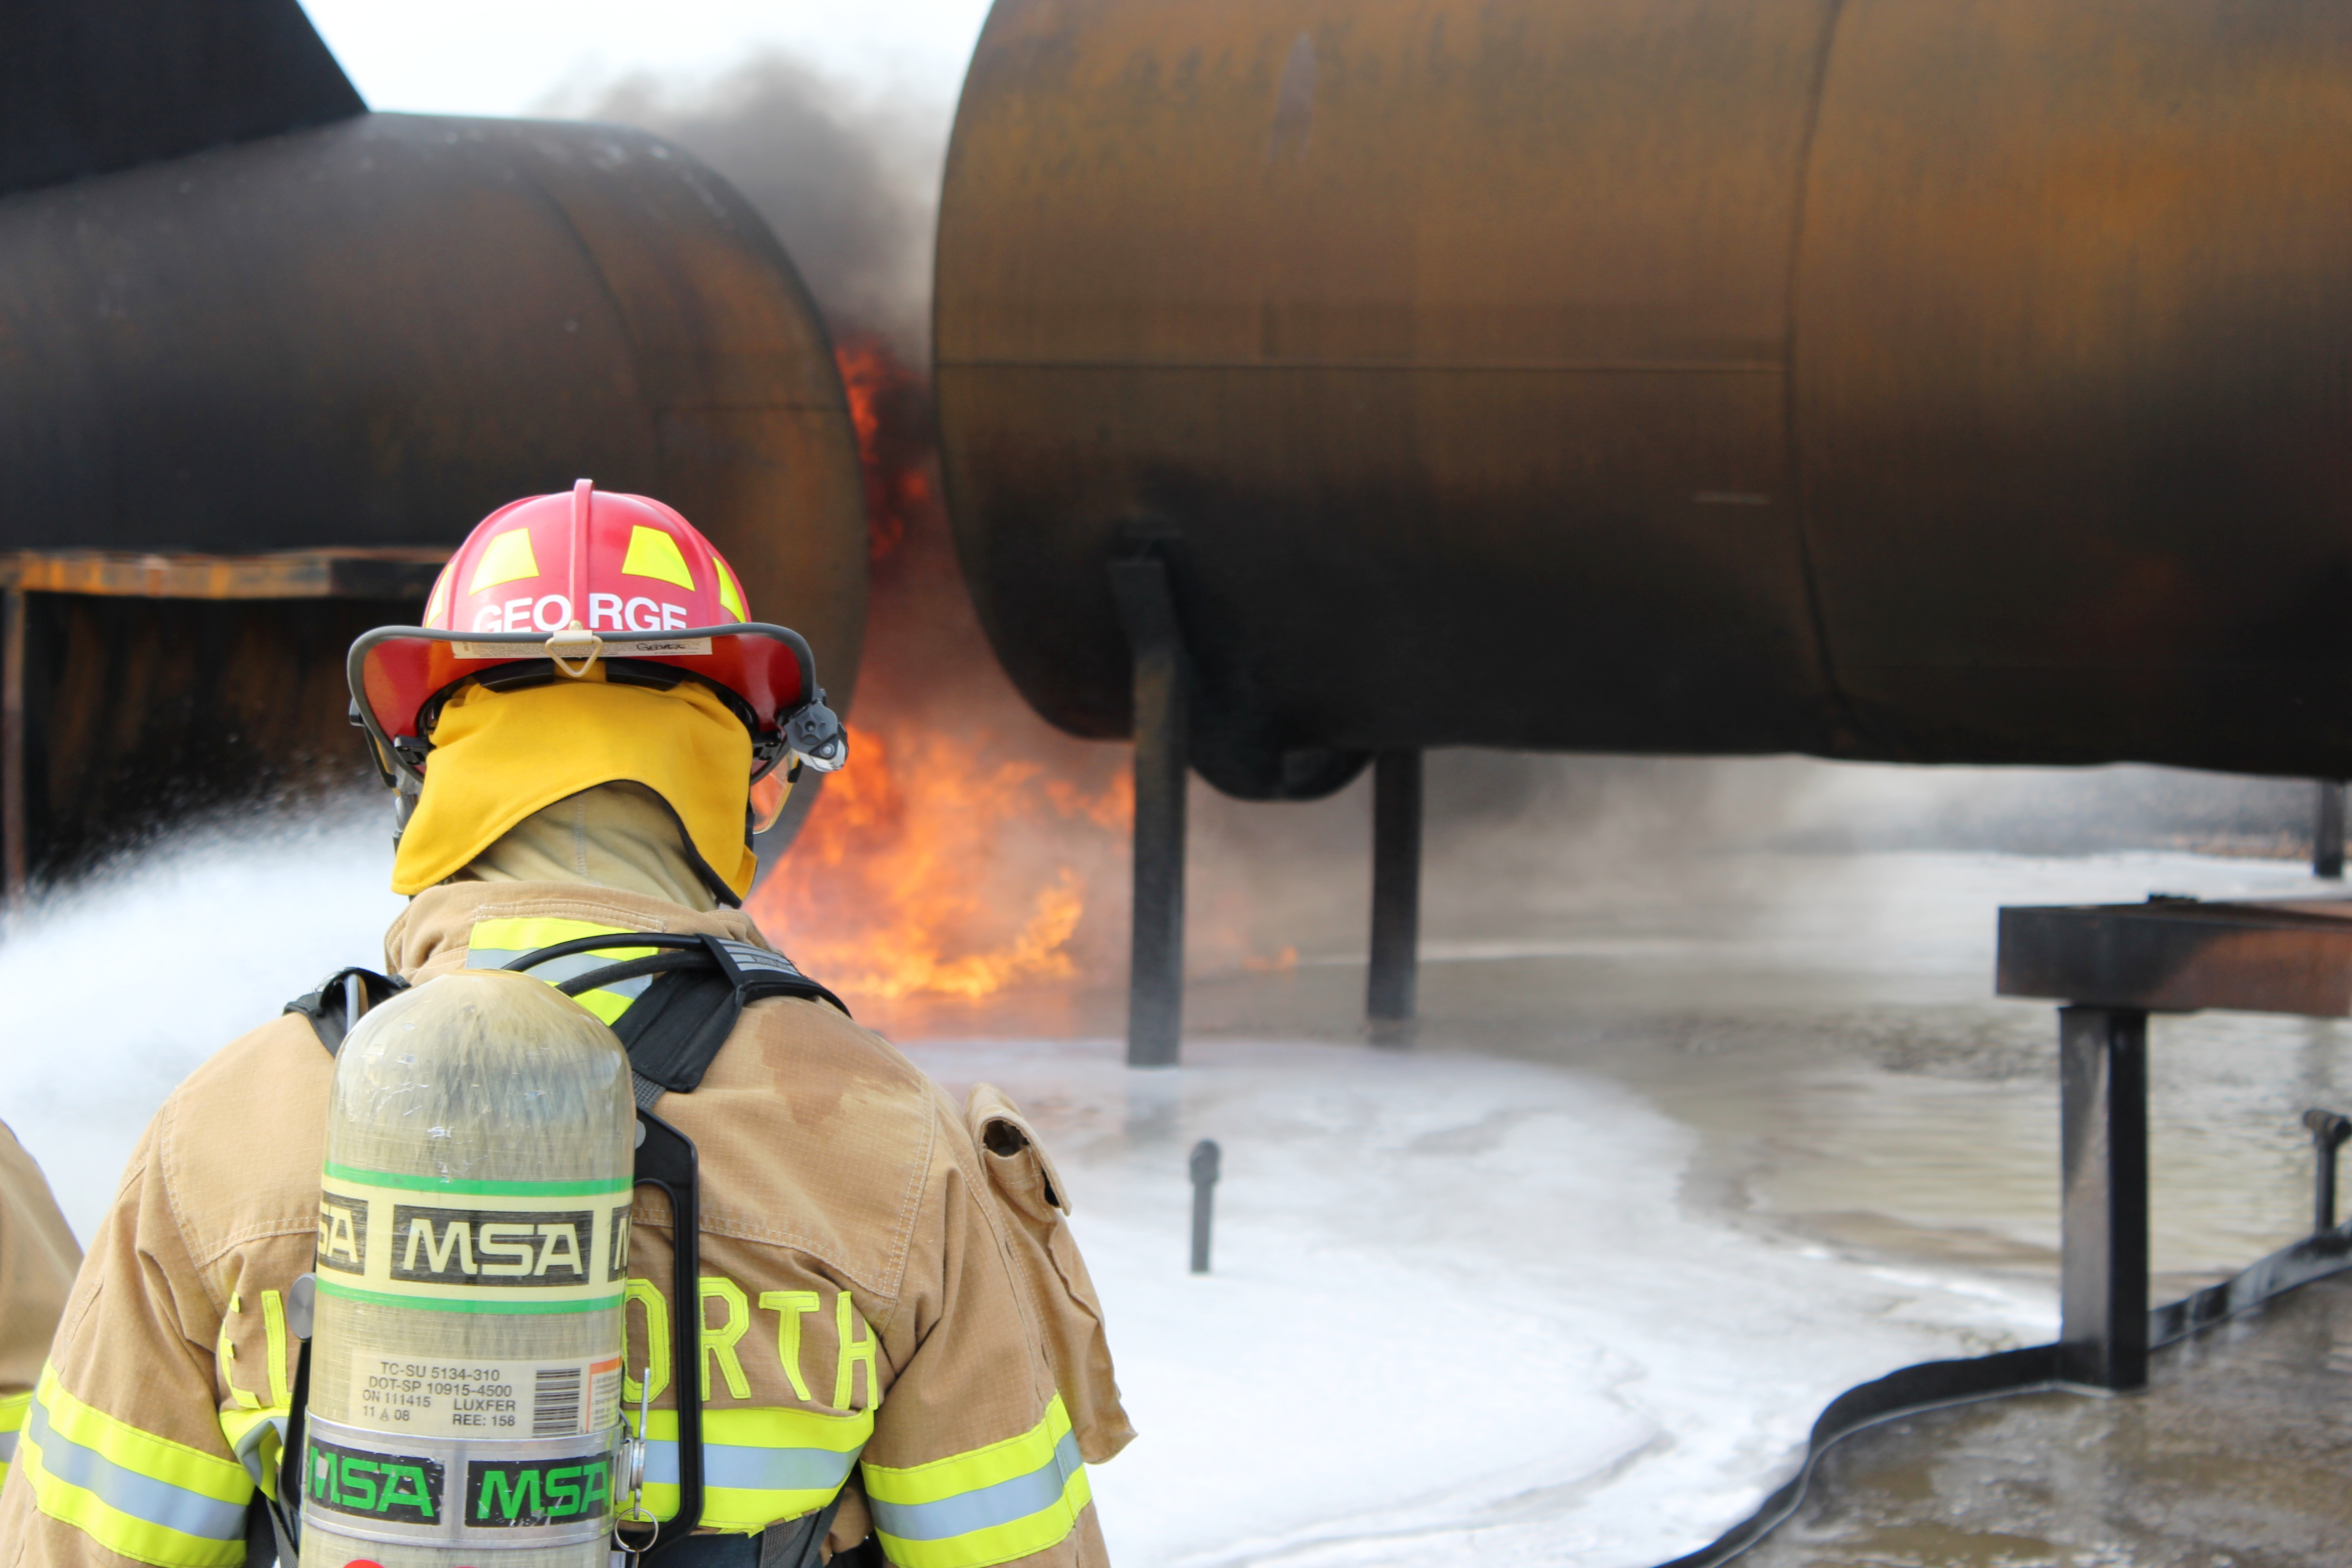 Firefighters putting out a fire at an aircraft firefighting training site